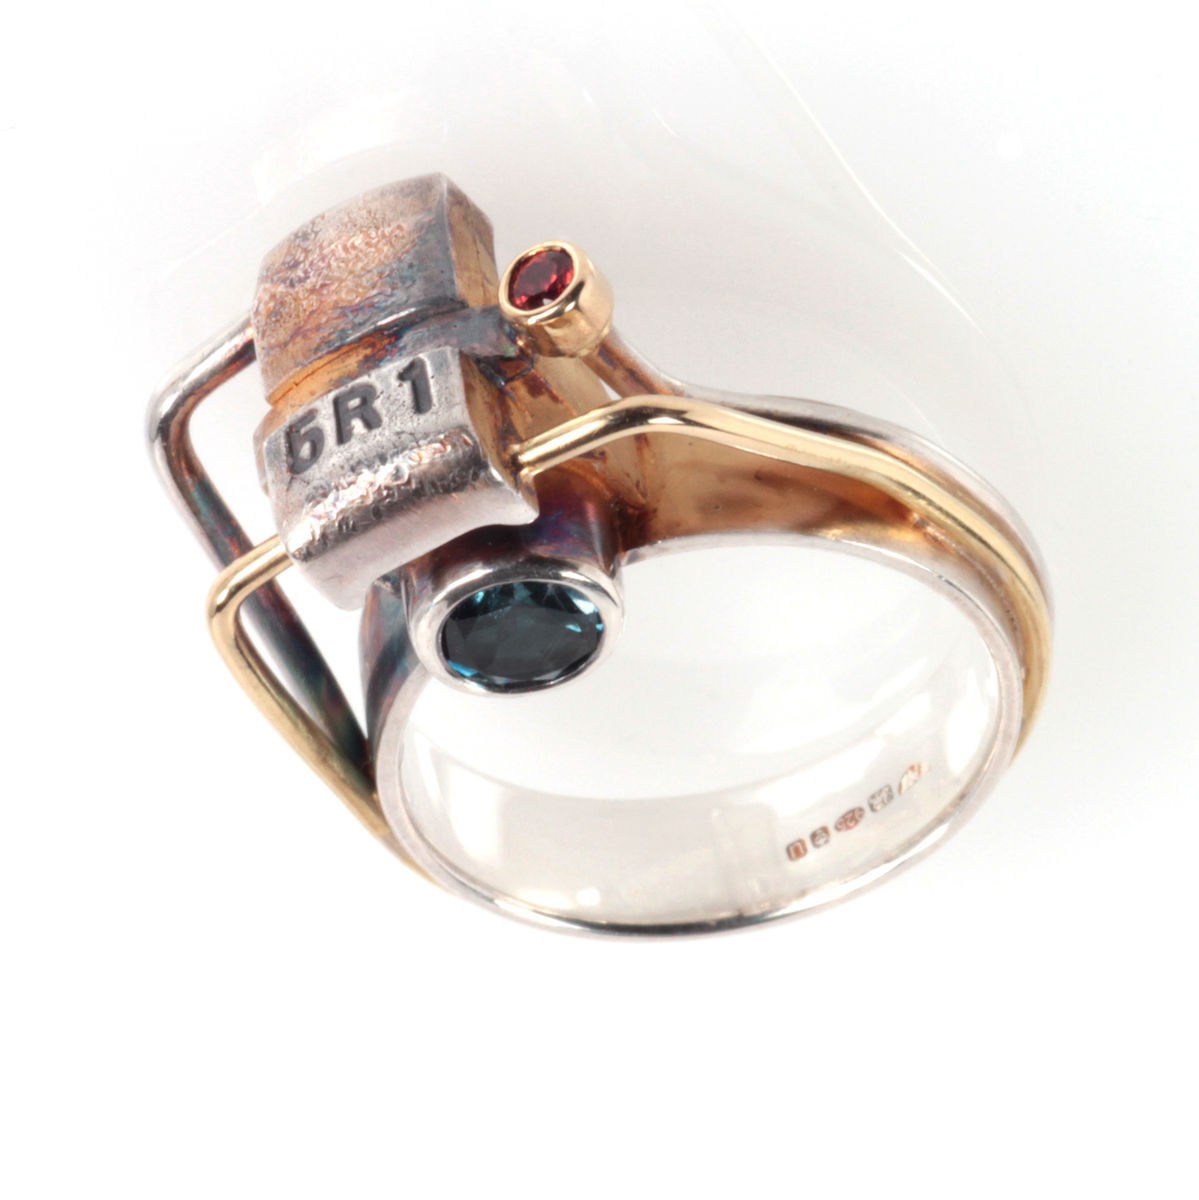 5R1 MkII Ring - product images  of